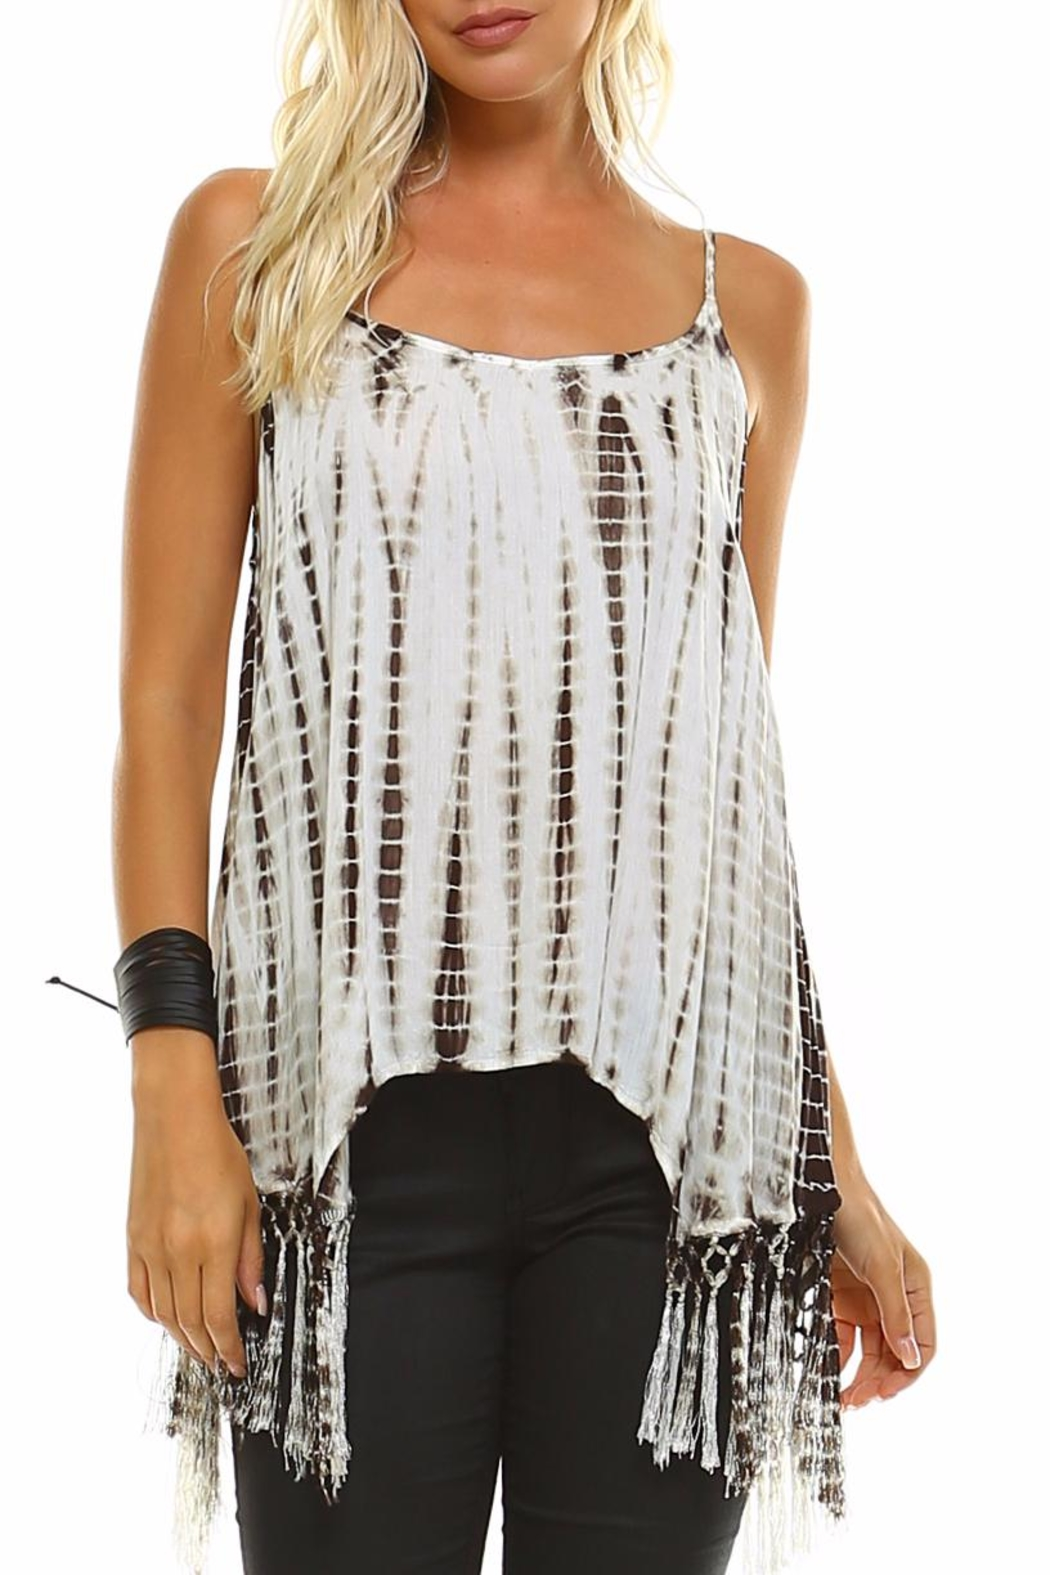 Maison Coupe Fringed Tie Dye Tank Top - Main Image